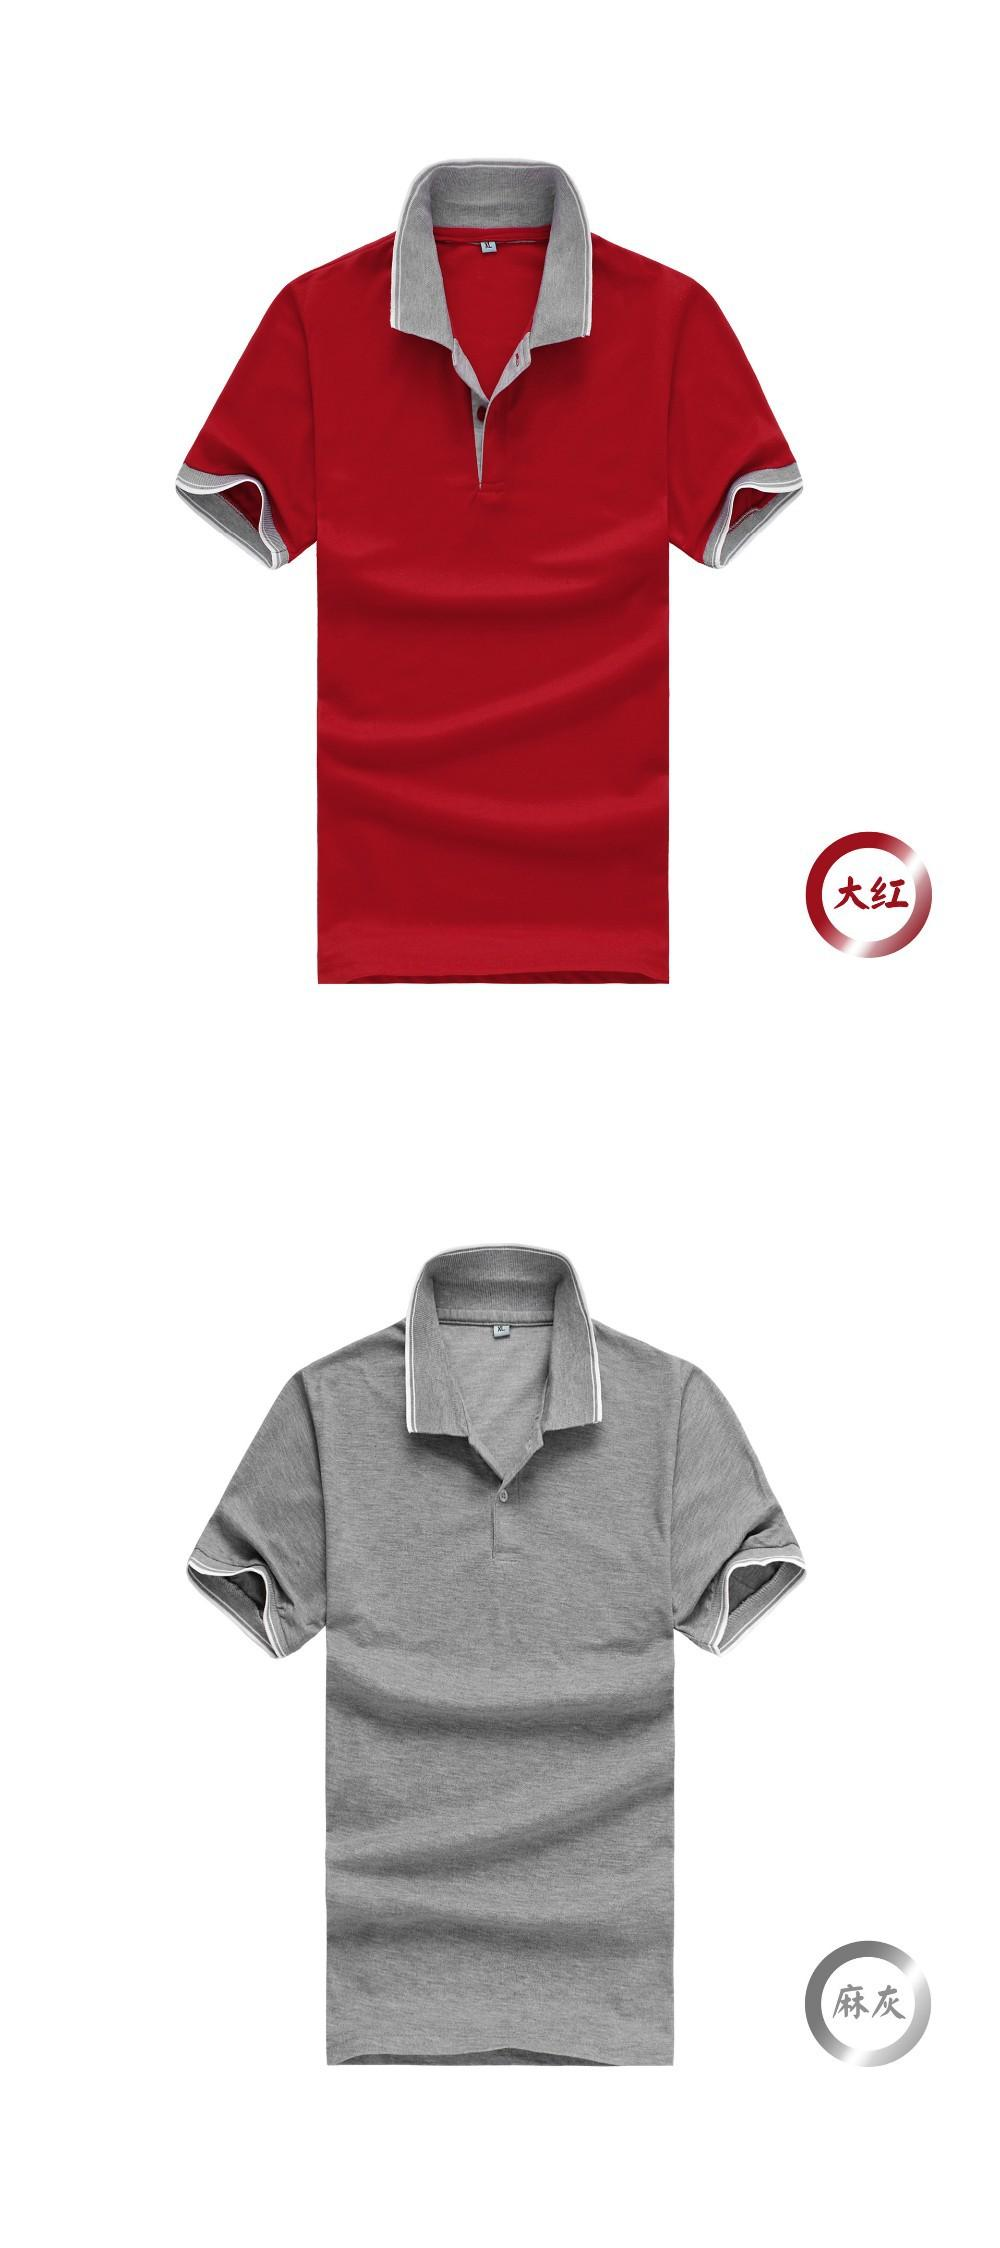 2015 new real camisa solid polo shirt mens fashion cool design short - Solid Polo Shirt Men Design Print Famous New Brand 2015 New Summer Sport Turn Down Polos Men Short Sleeve Camisa Polo